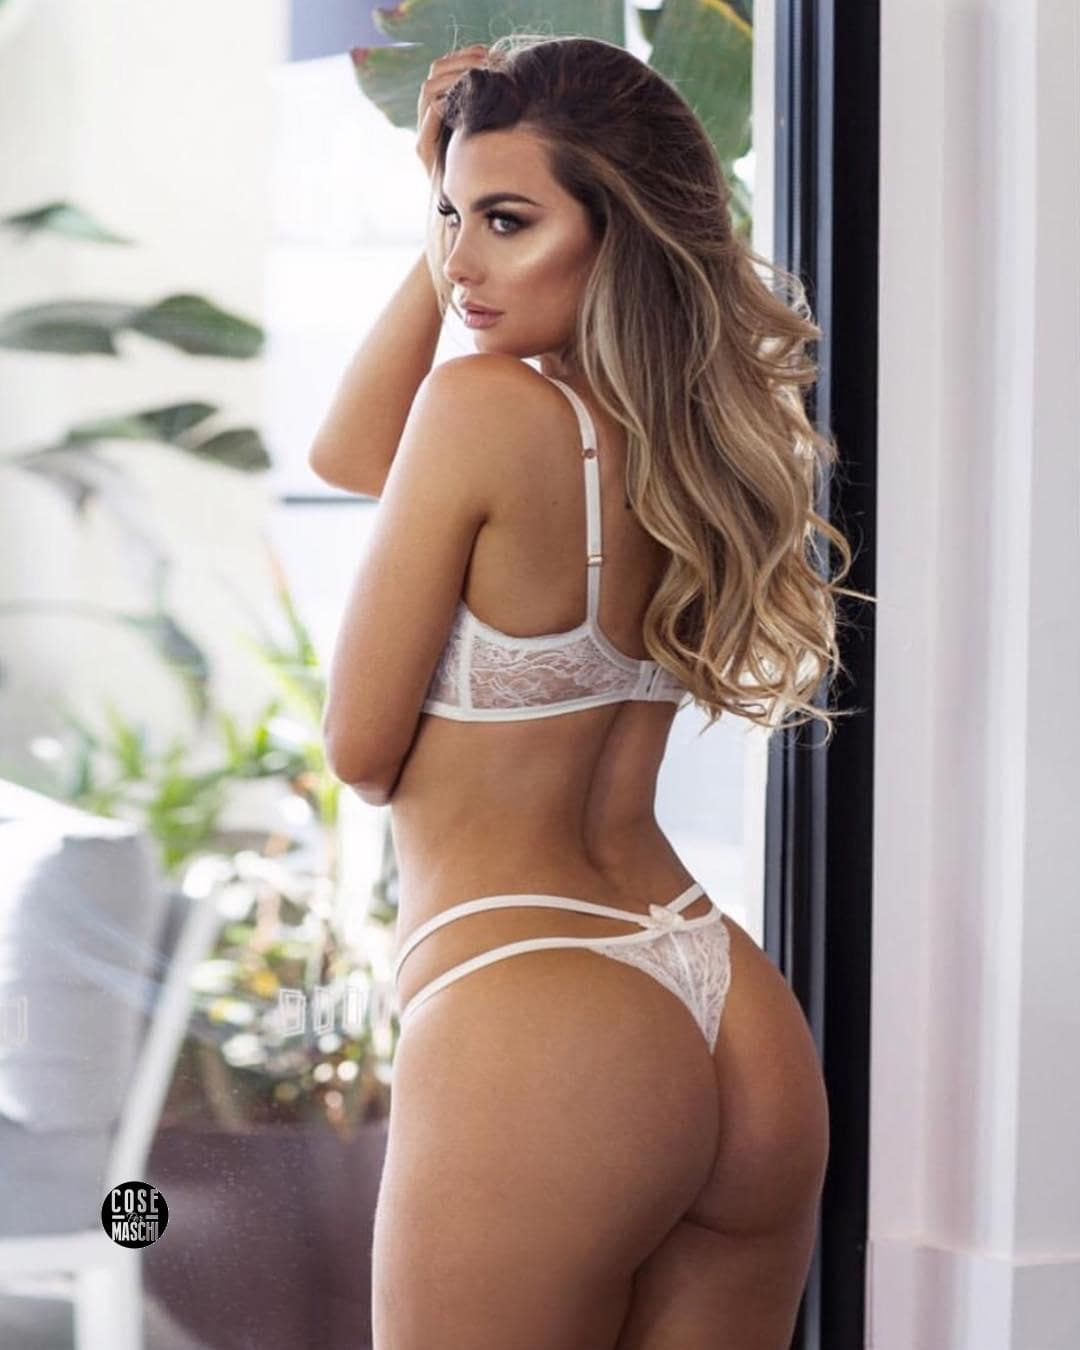 emily sears hot ass